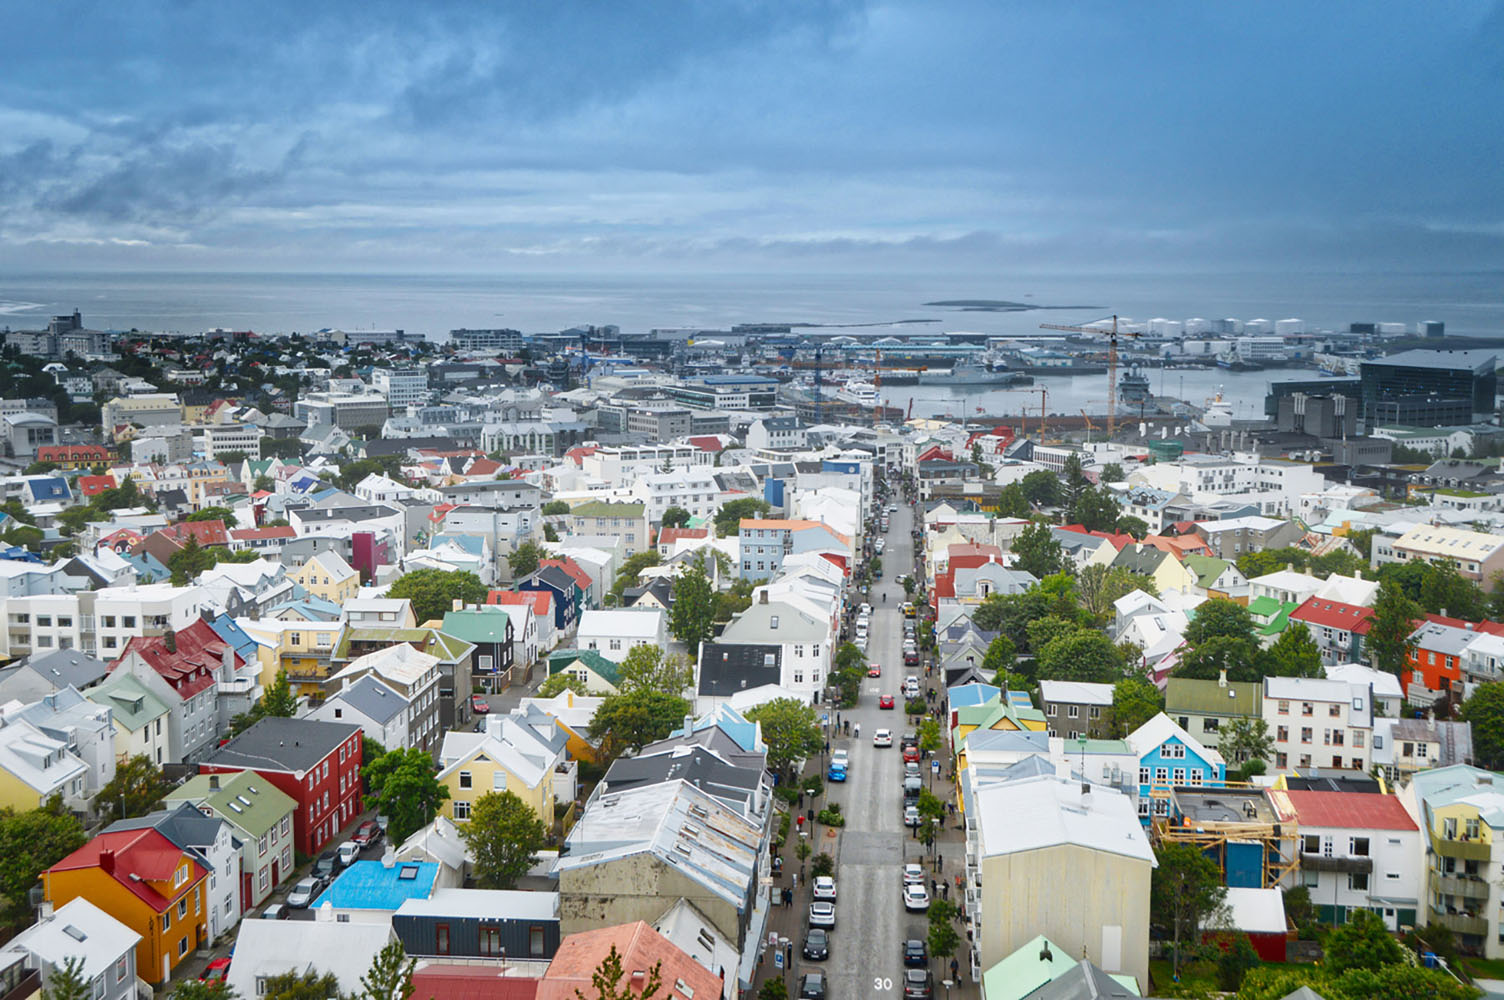 Meet Me Onboard loves Iceland's capital city and you will too!